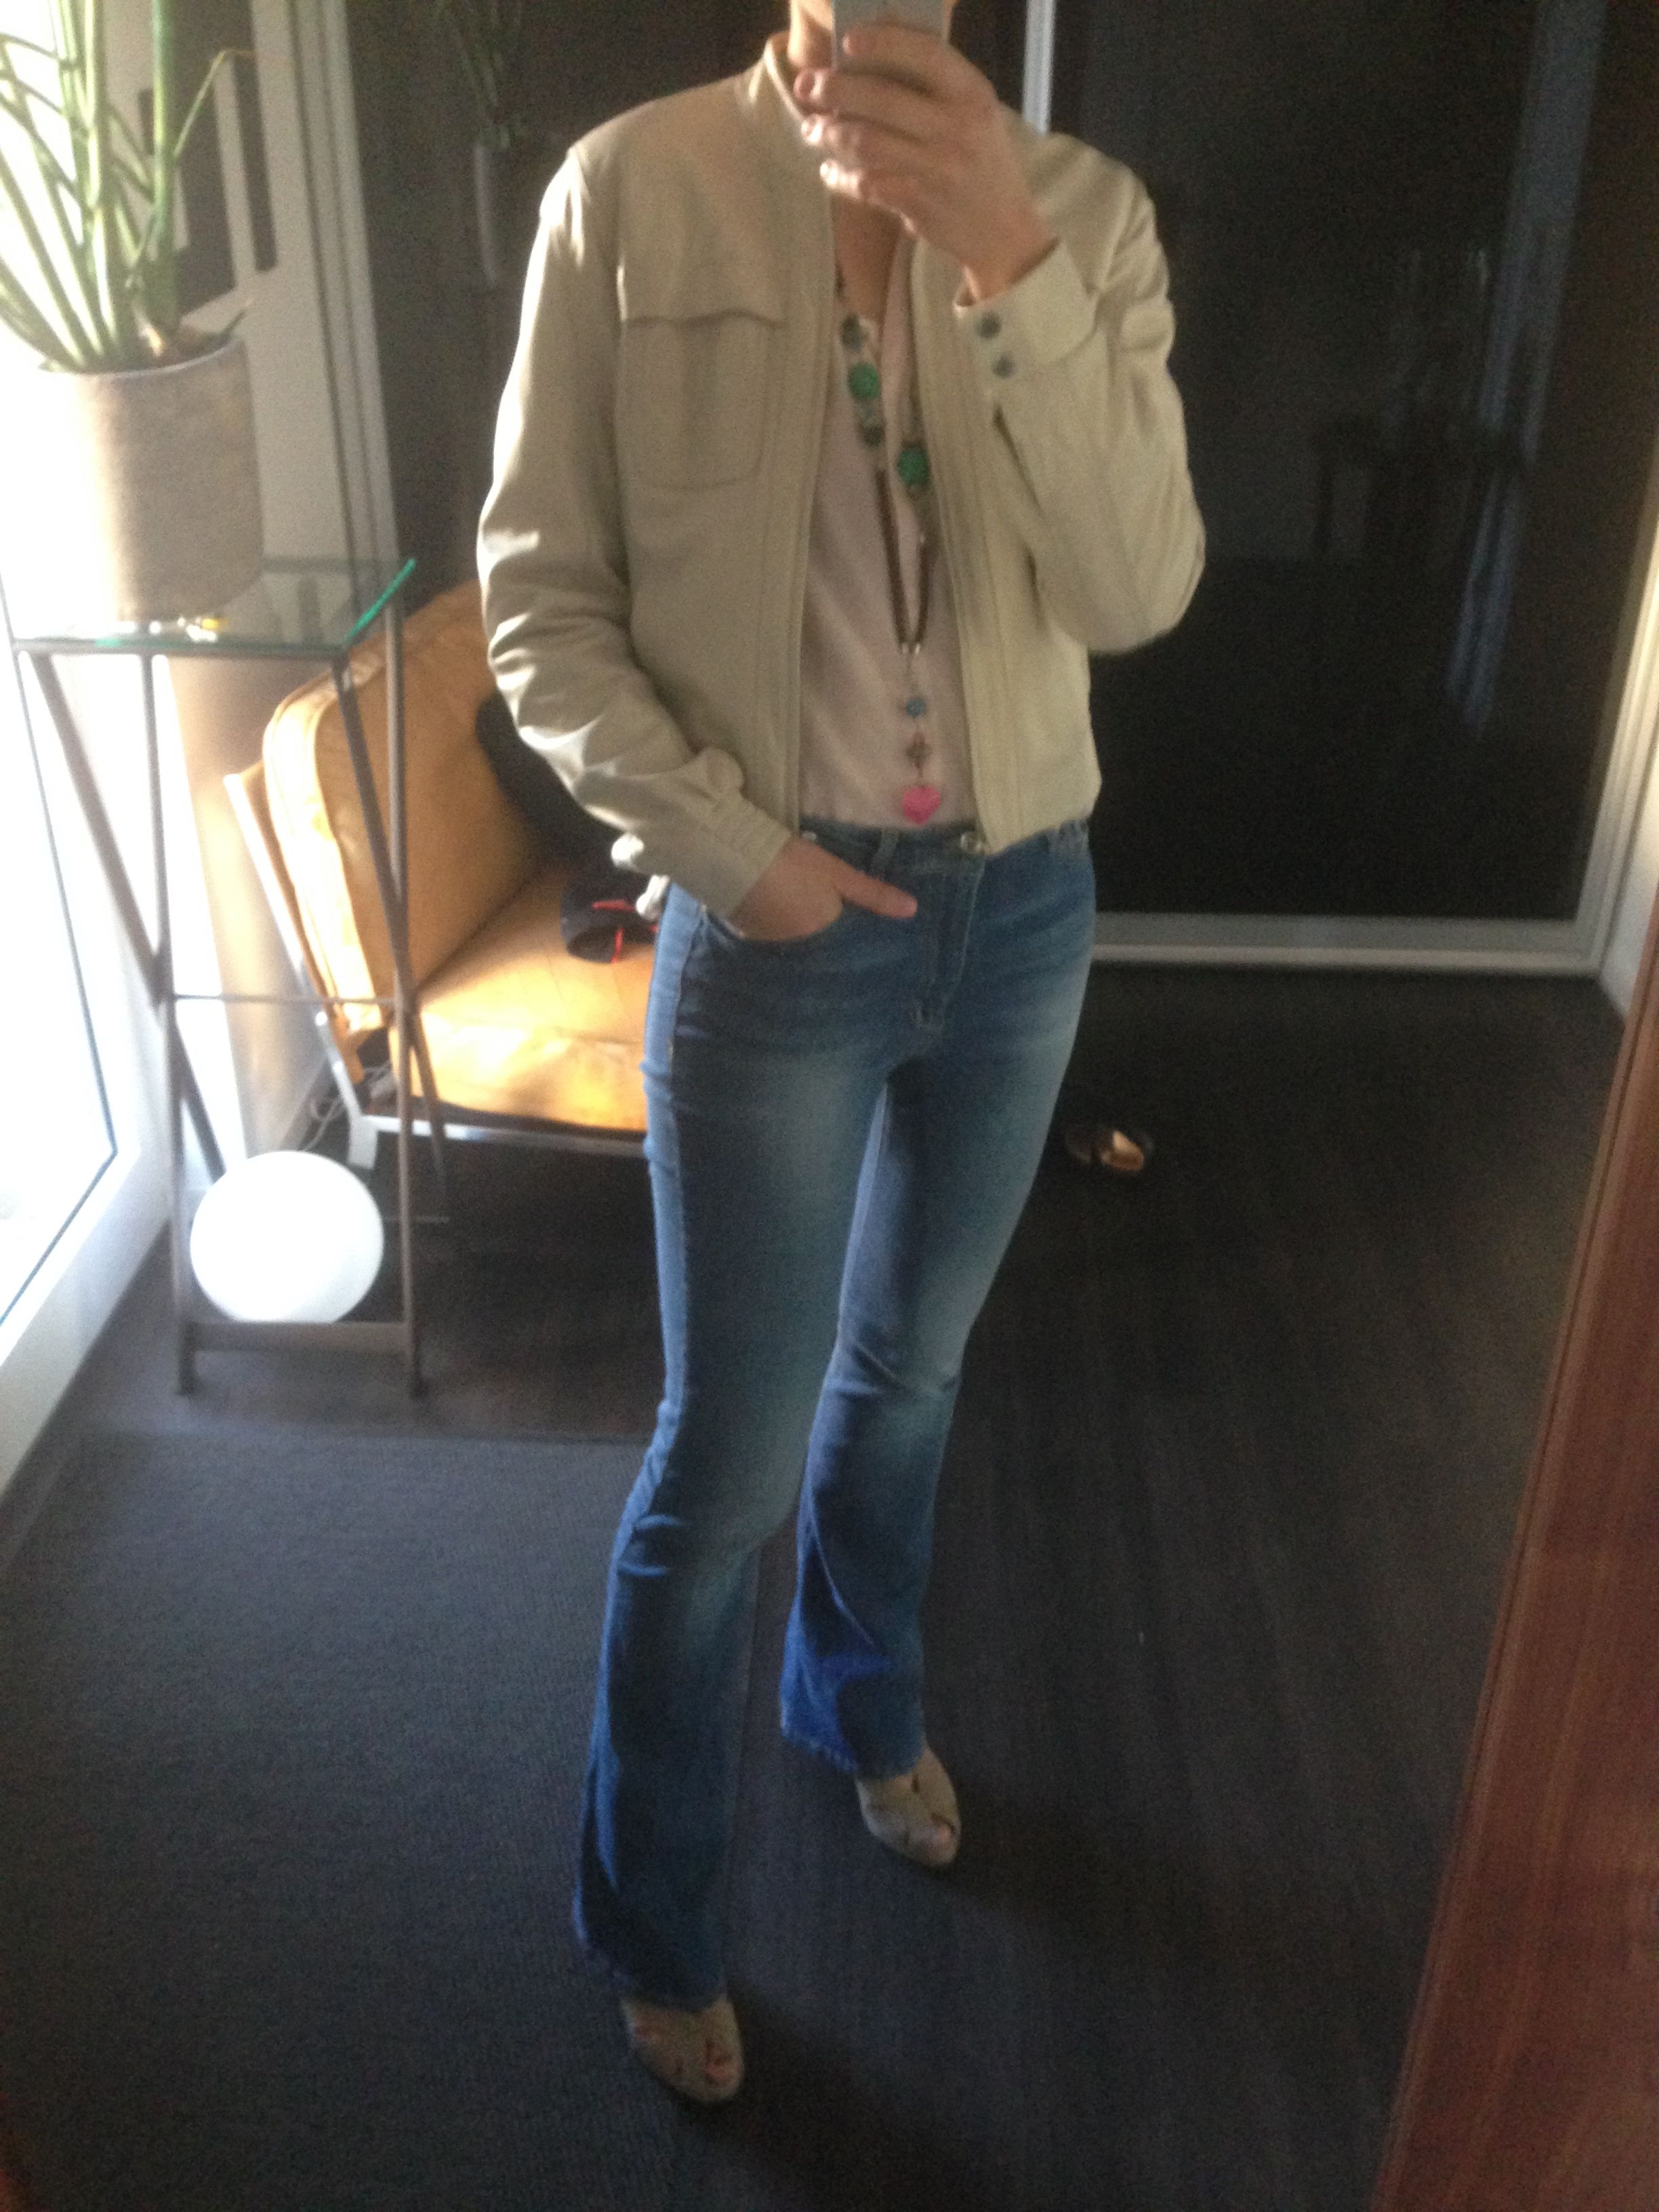 Vintage leather jacket by #hallhuber, jeans by #mango